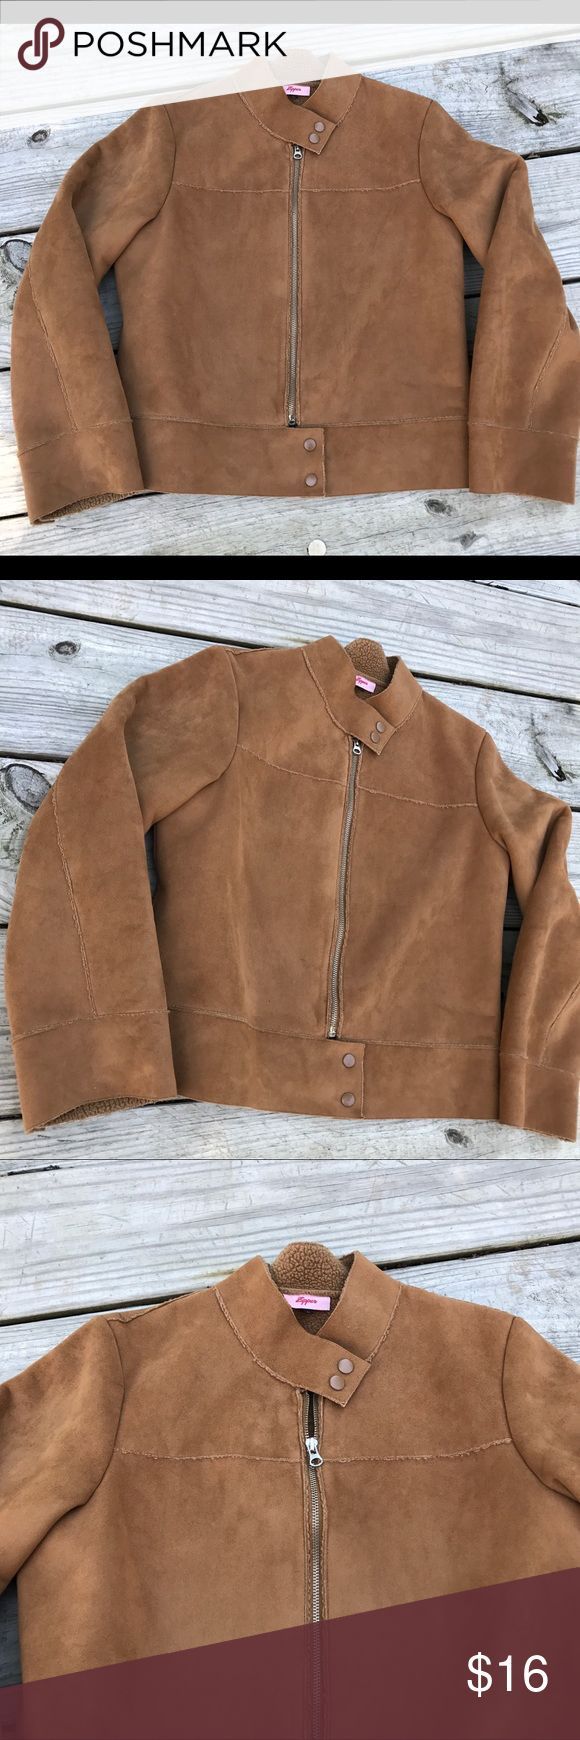 """Vegan Suede and shearling large camel color jacket Excellent condition full zip up with two bottom buttons and to top buttons. No pockets. Size large. Pitt to pit laying flat 20.5 inches. Pit to hem 13 inches. Pit to cuff 17"""" zipper Jackets & Coats"""